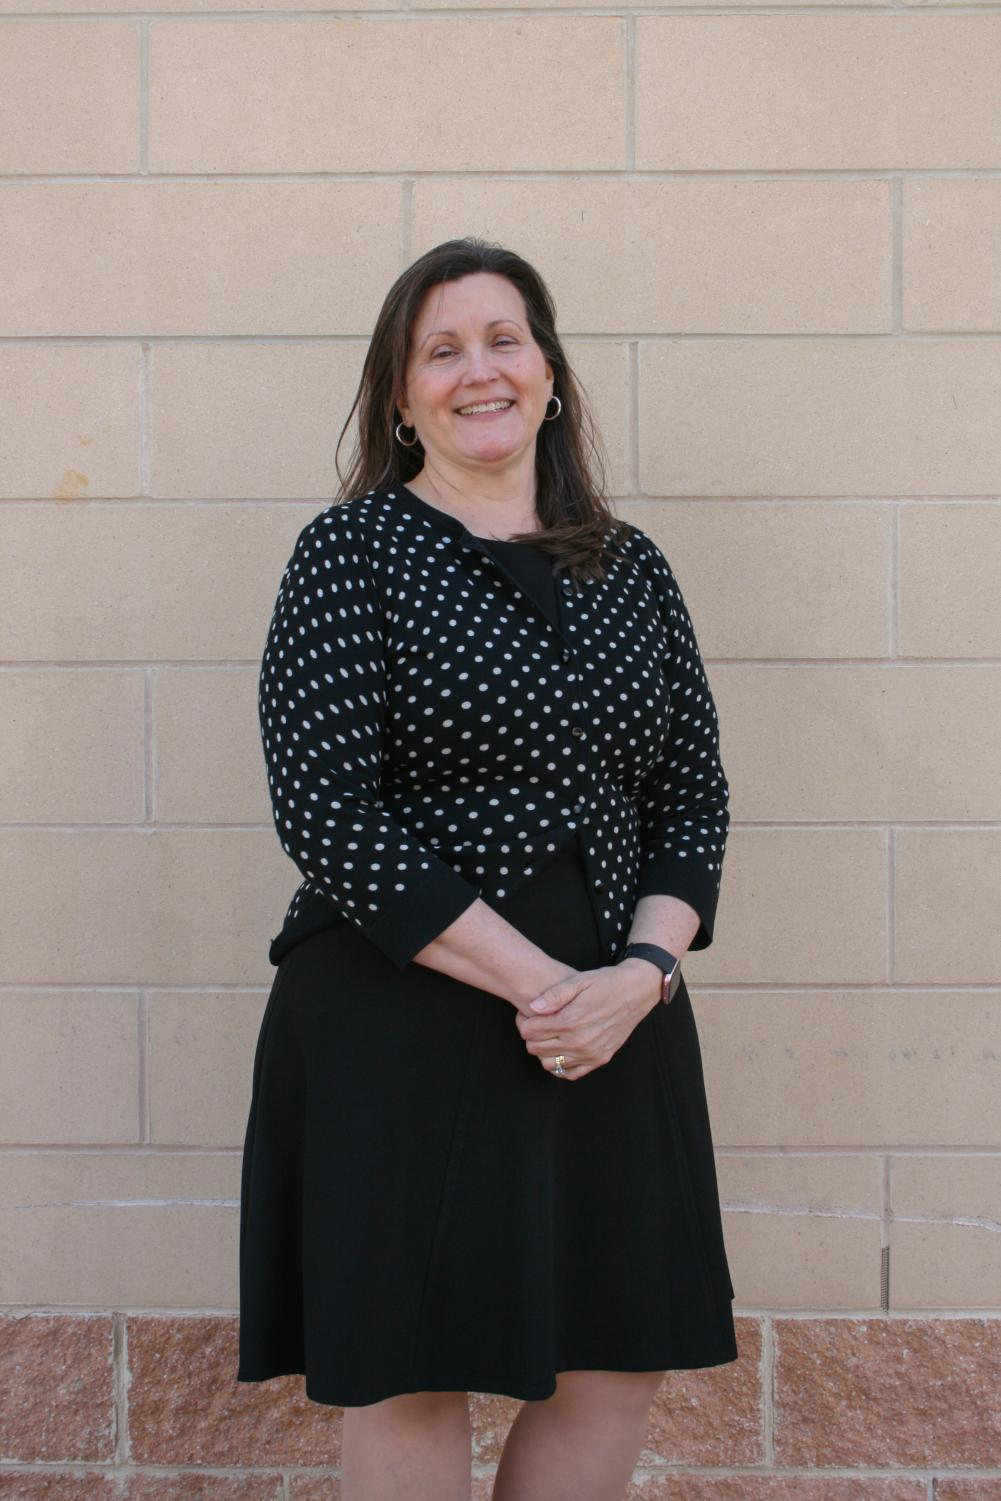 Andrea Zamora, the Director for the Center of Staff and Faculty Development